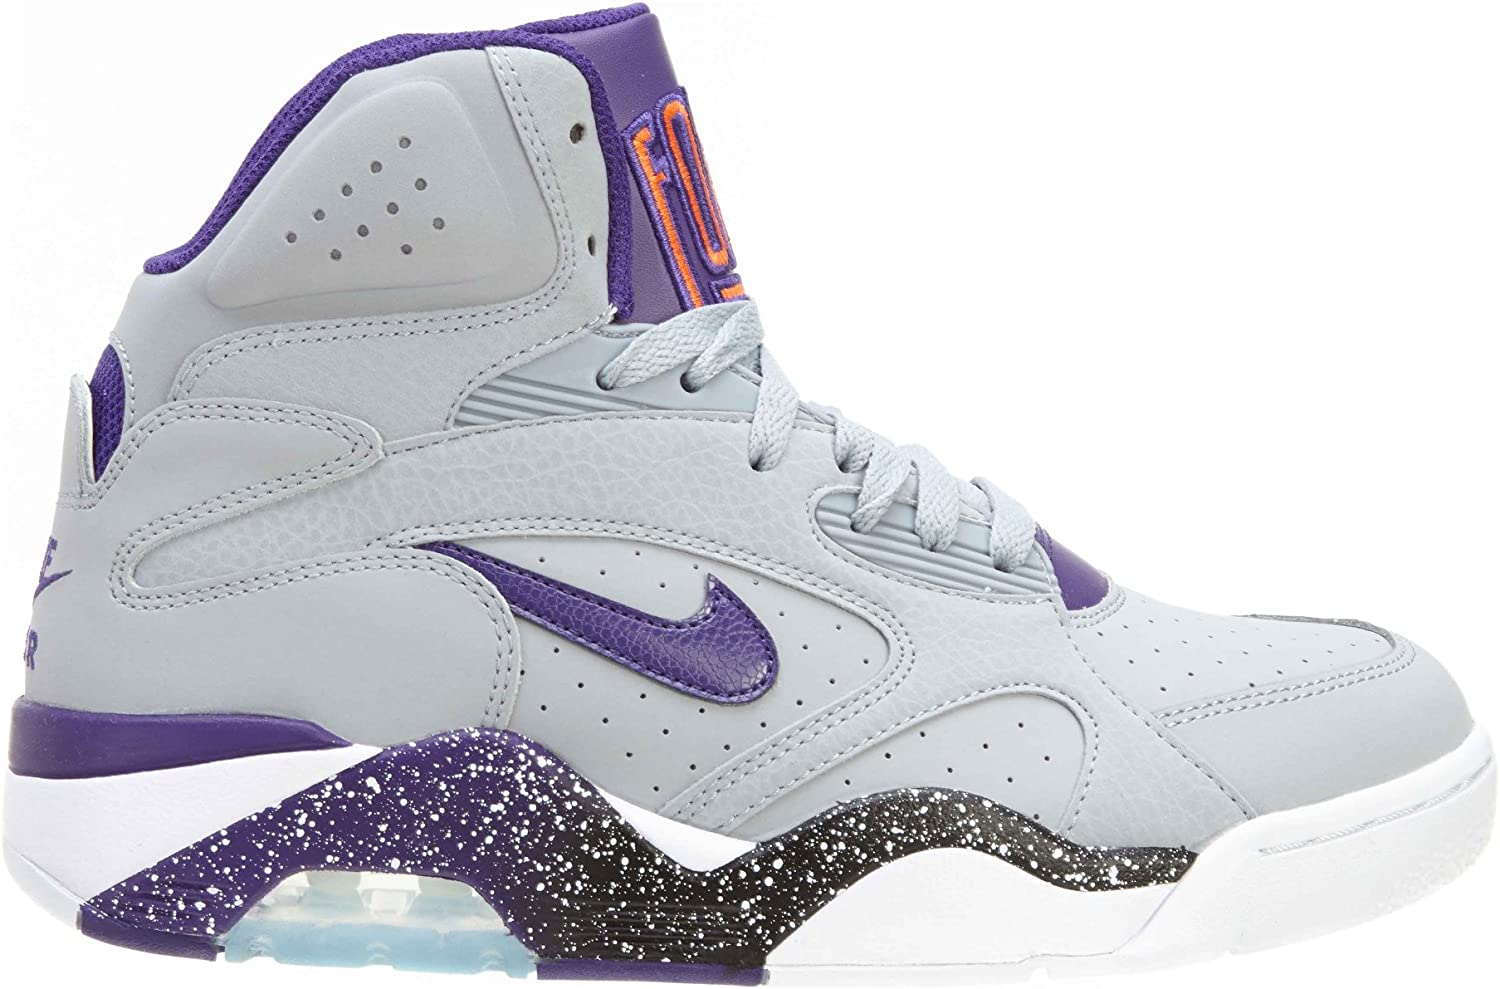 Nike Chaussures Basket Air Force 180 Mid Hommes 537330 050